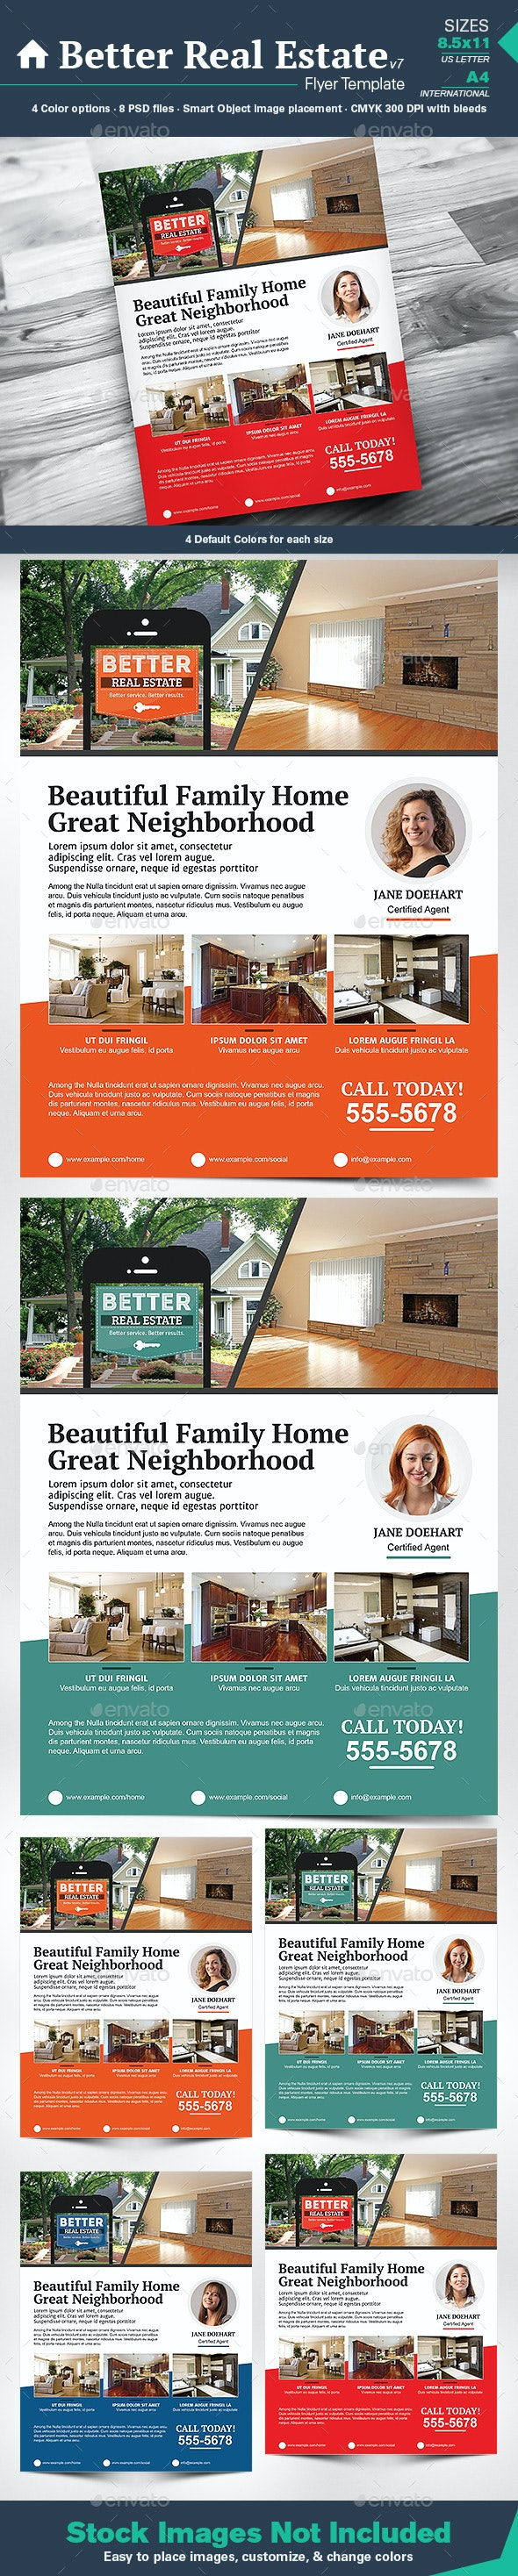 Better Real Estate Flyer Template v7 - Corporate Flyers